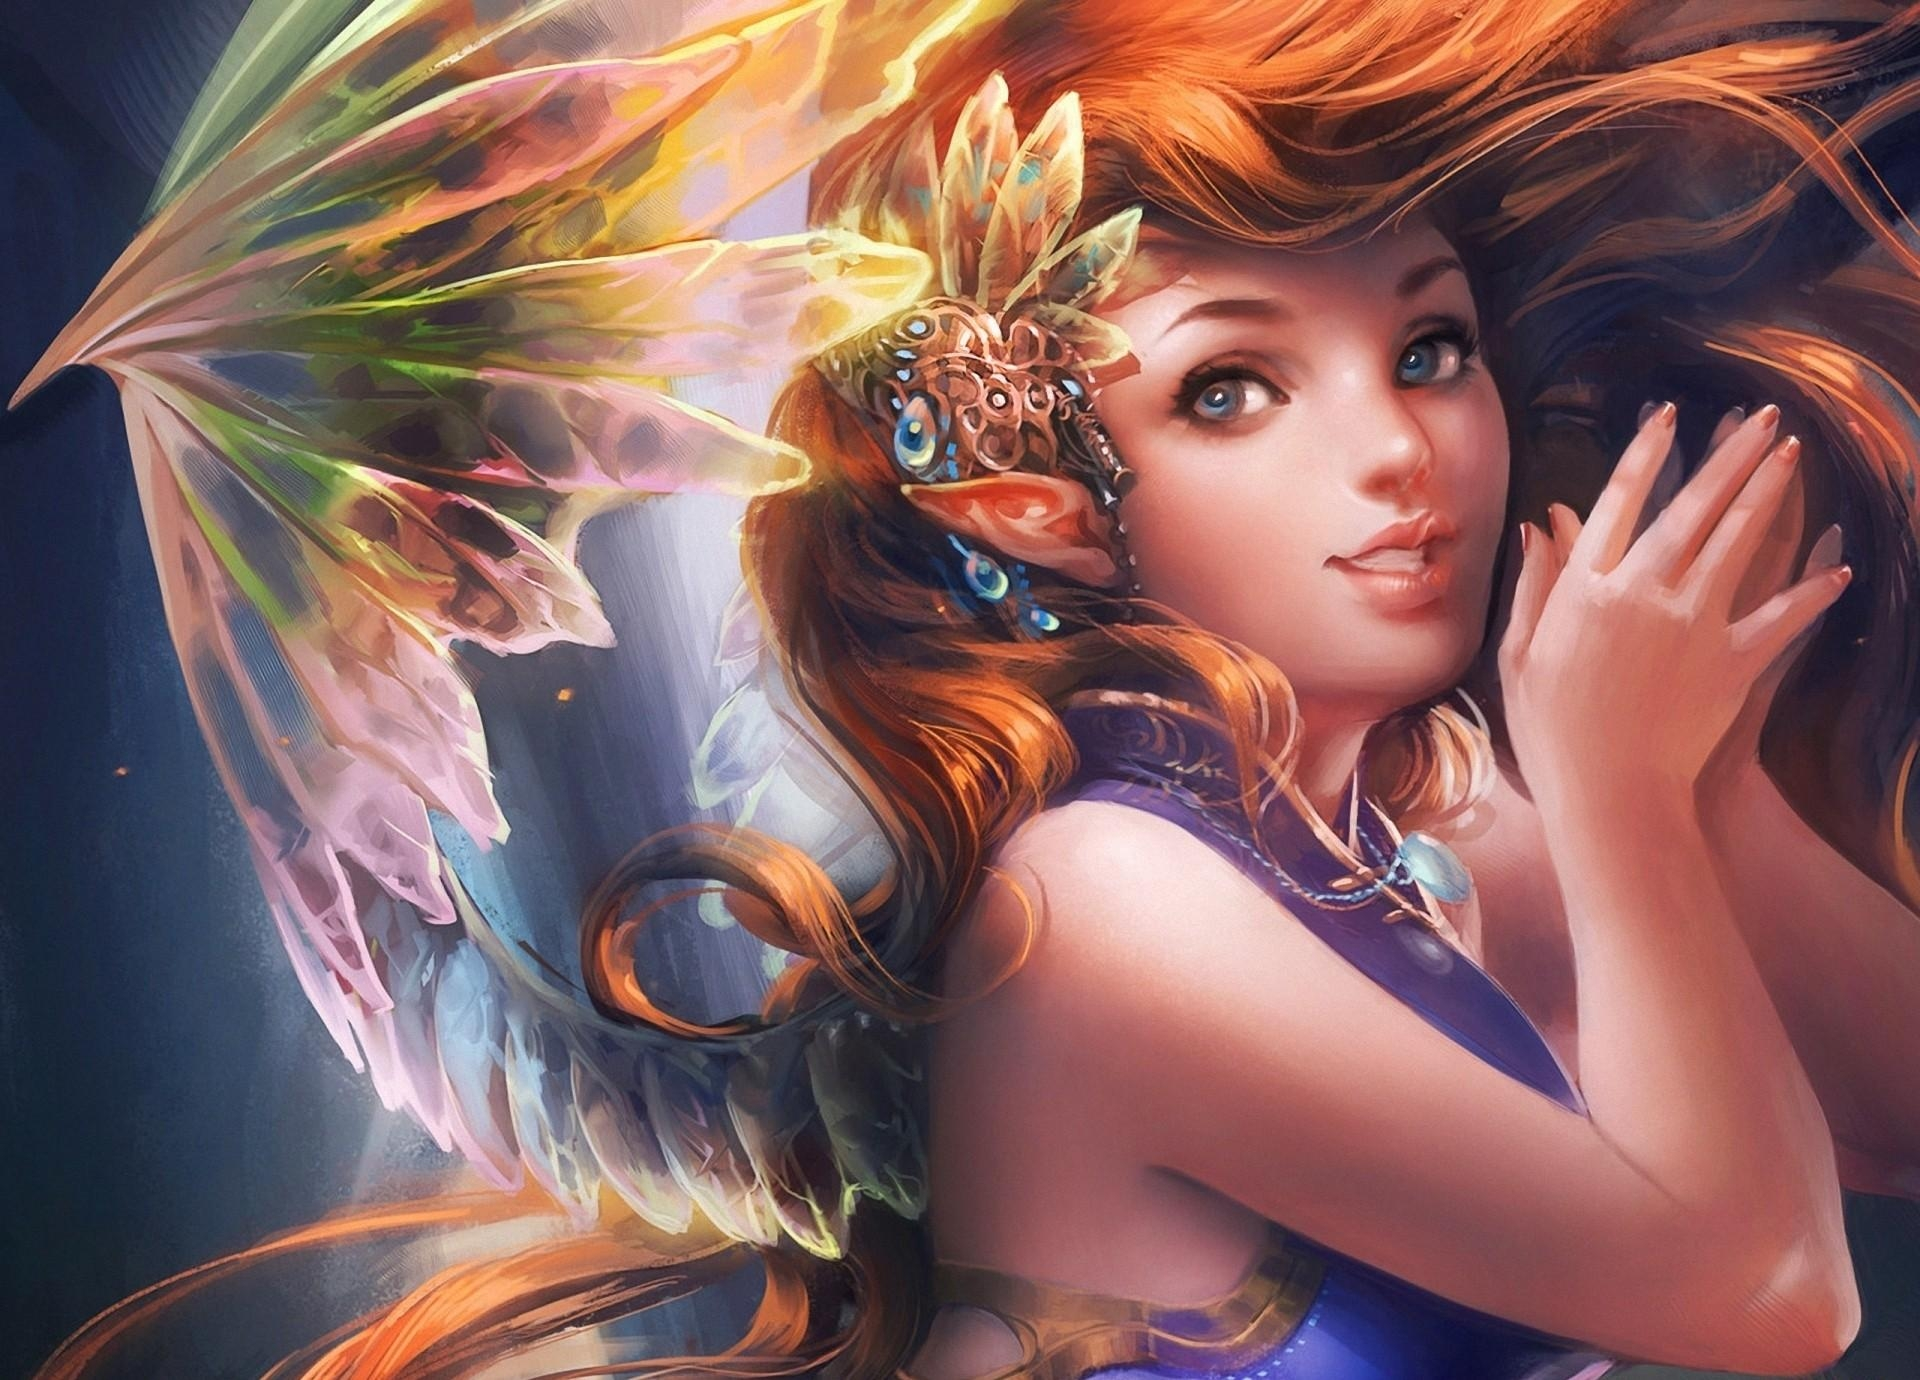 106737 free wallpaper 1440x2560 for phone, download images Fantasy, Girl, Wings, Hair, Elf 1440x2560 for mobile